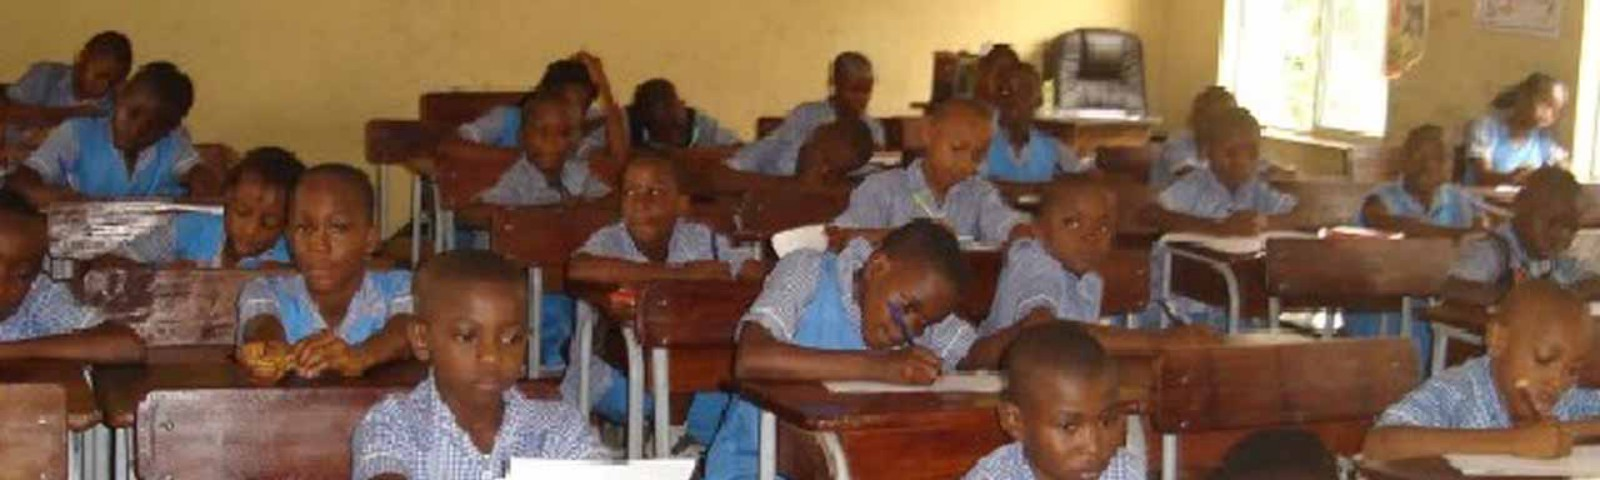 Credit: Guardian.ng, The picture looks like my primary school though. Same Uniforms.